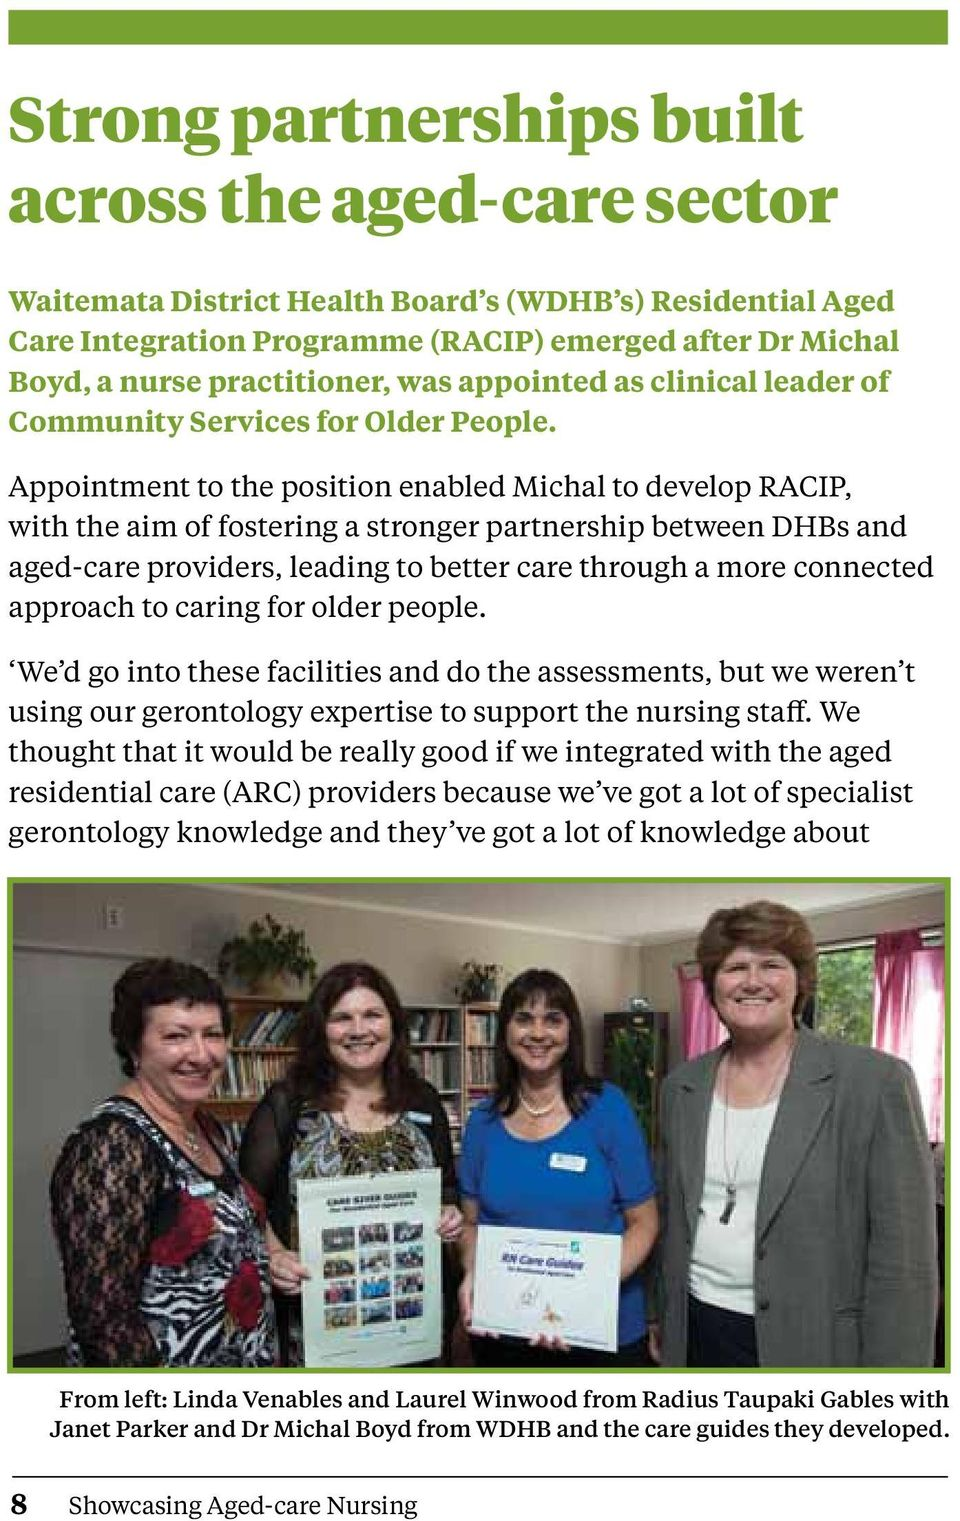 Appointment to the position enabled Michal to develop RACIP, with the aim of fostering a stronger partnership between DHBs and aged-care providers, leading to better care through a more connected